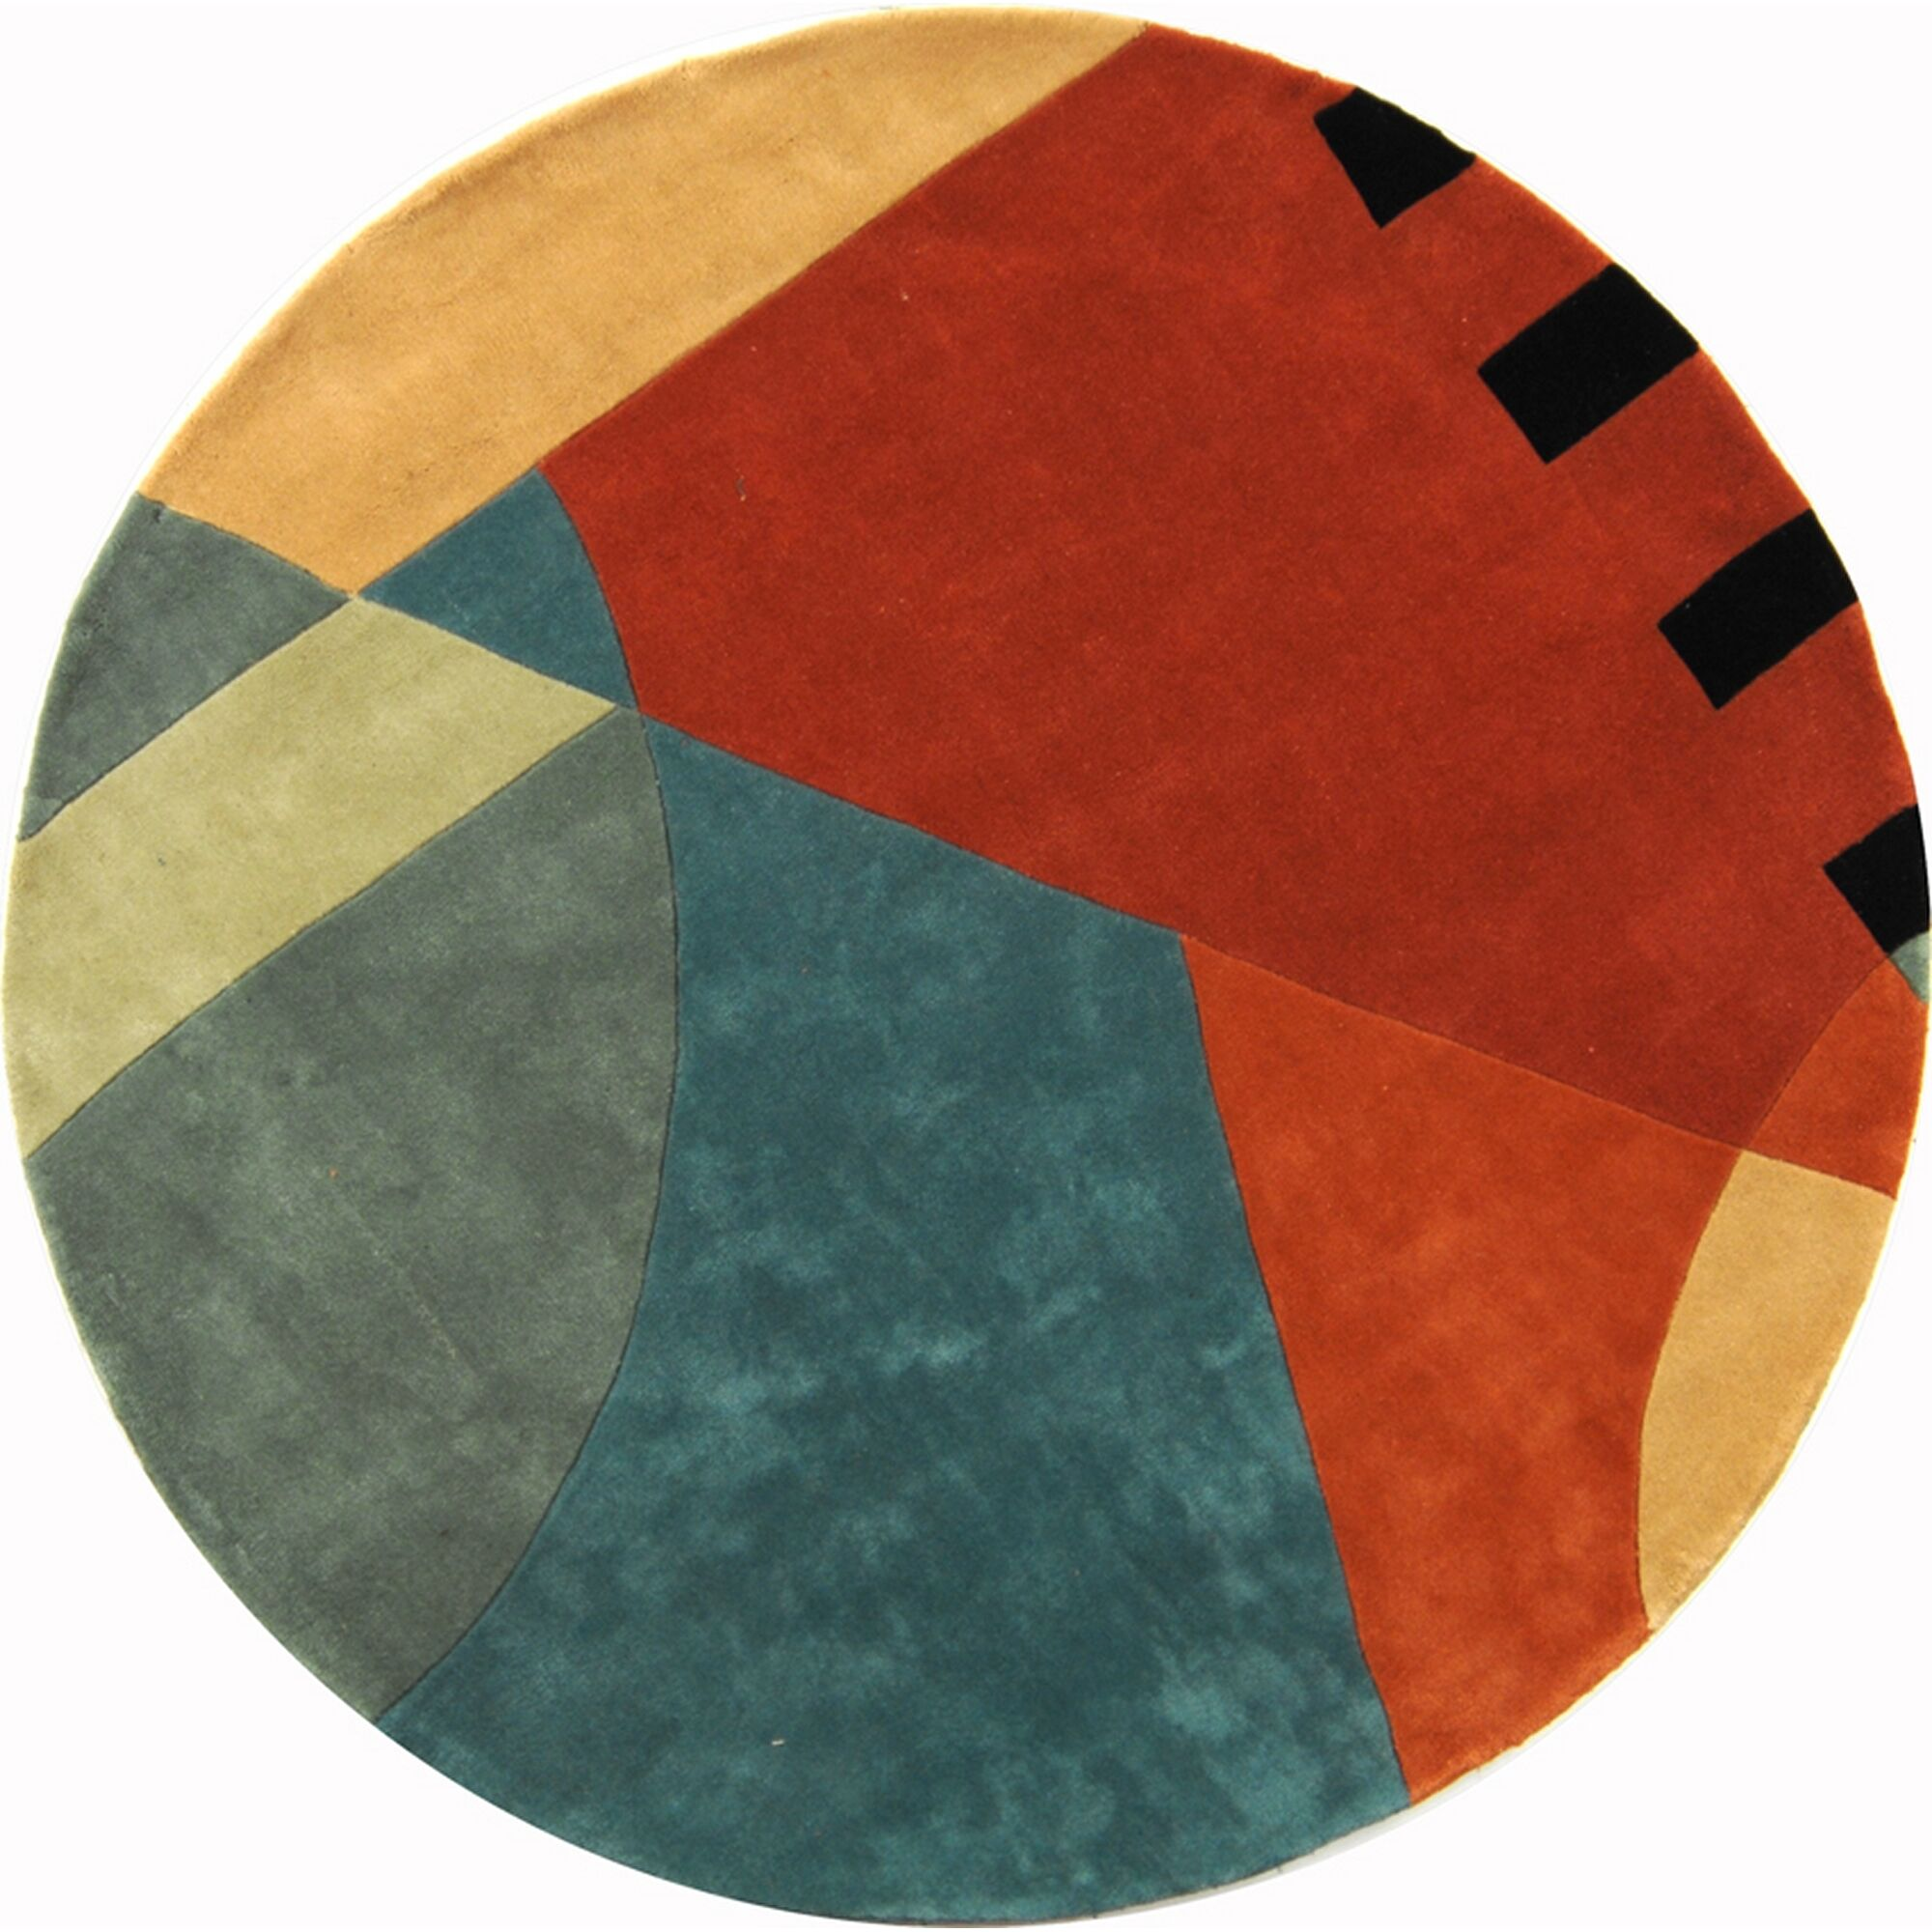 Rodeo Drive Hand-Tufted Orange/Gray Area Rug Rug Size: Round 7'9